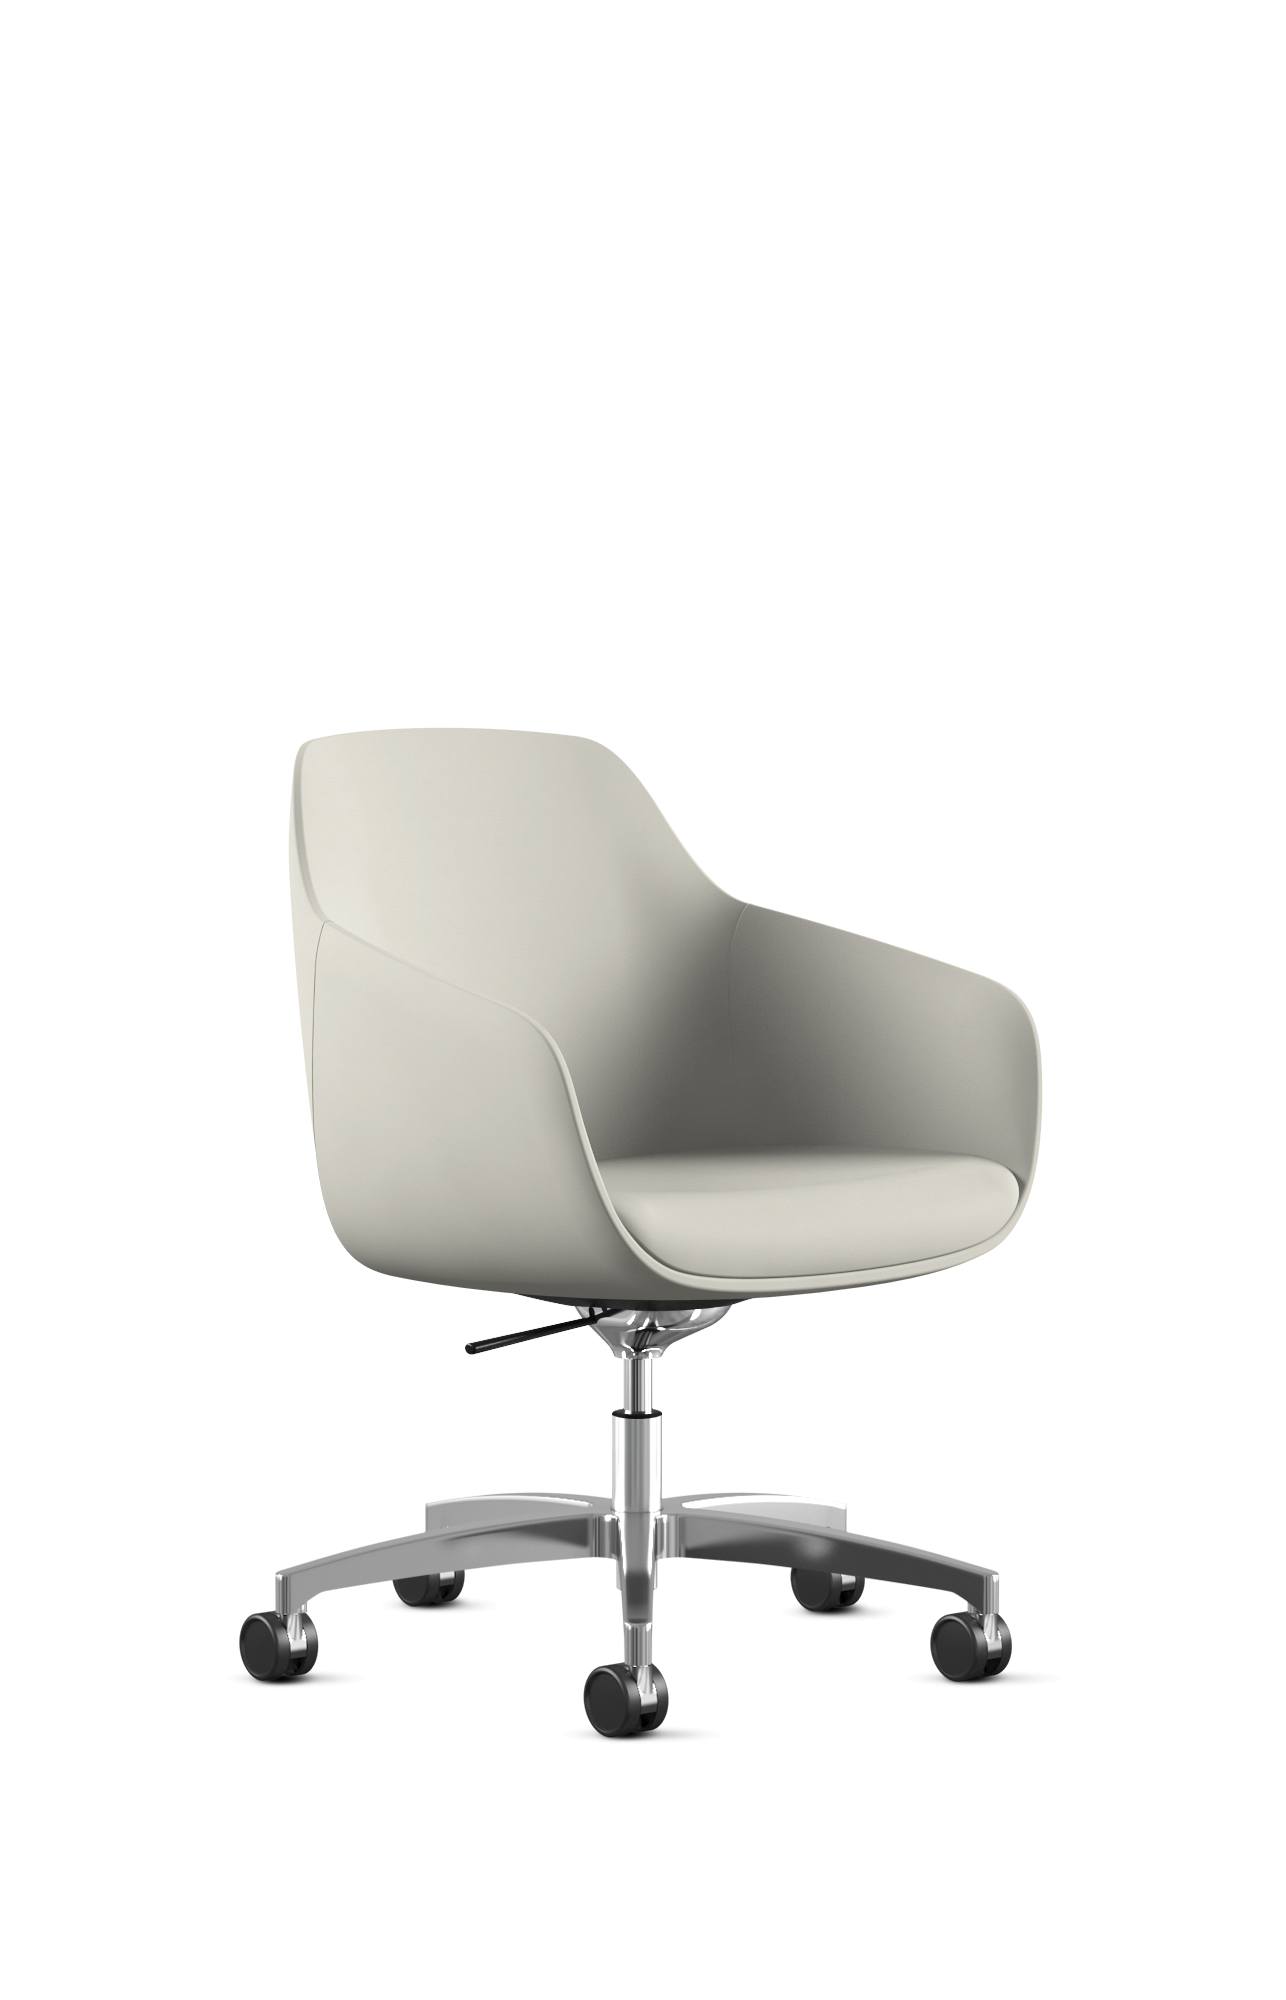 Ellie Vinyl Office Chair Chic Office Chair Vinyl Office Chair Chair